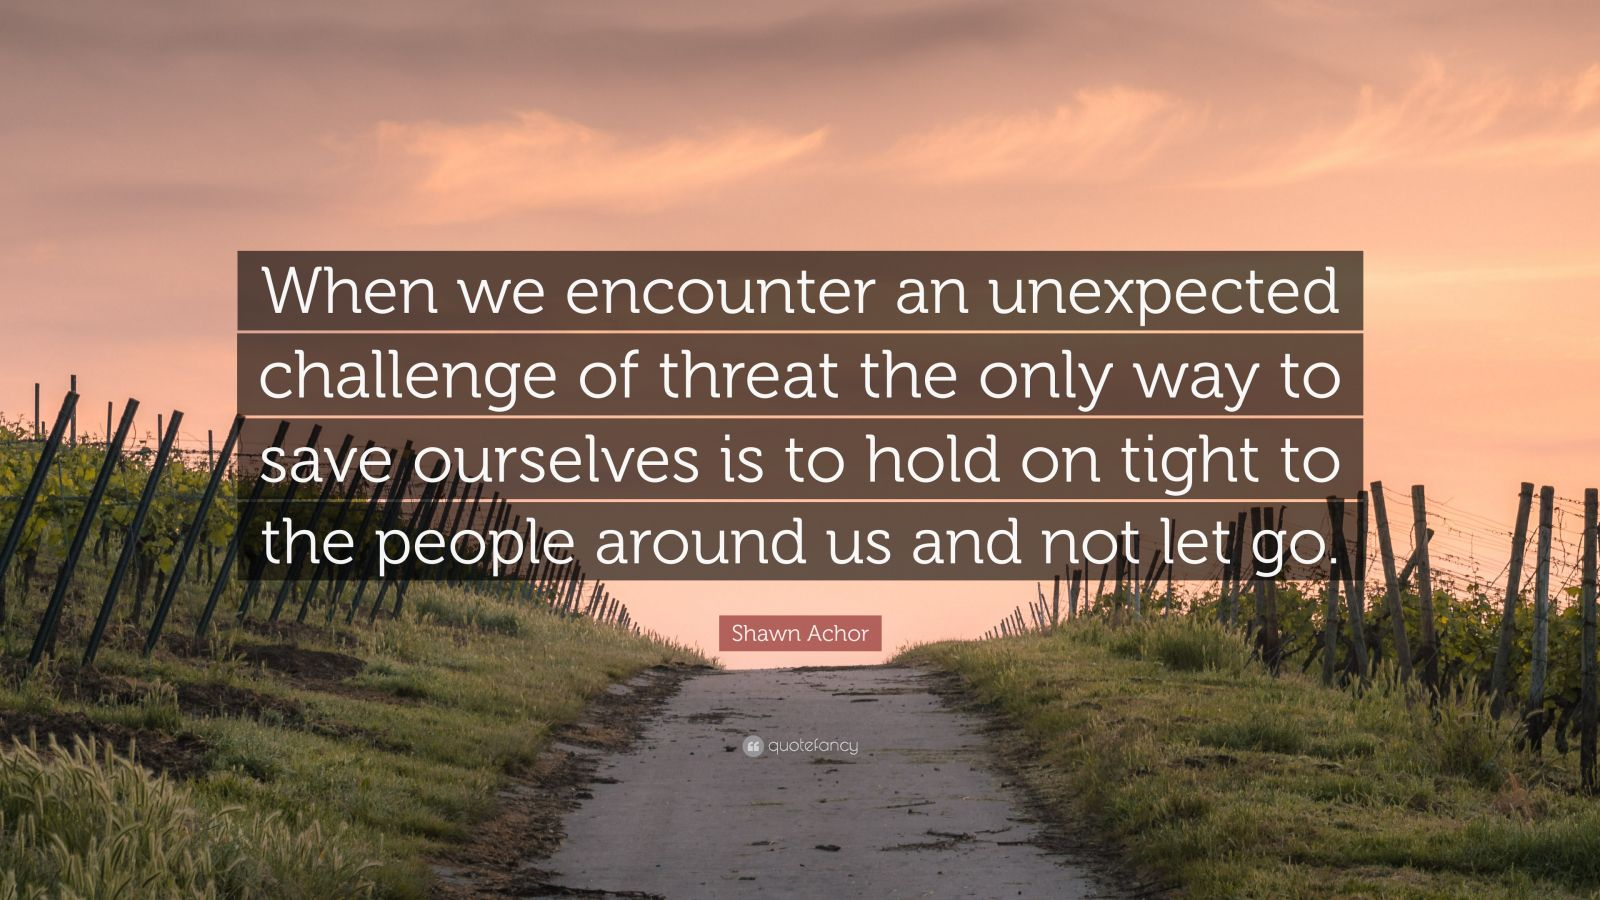 """Shawn Achor Quote: """"When we encounter an unexpected challenge of threat the only way to save ourselves is to hold on tight to the people around us and not let go."""""""